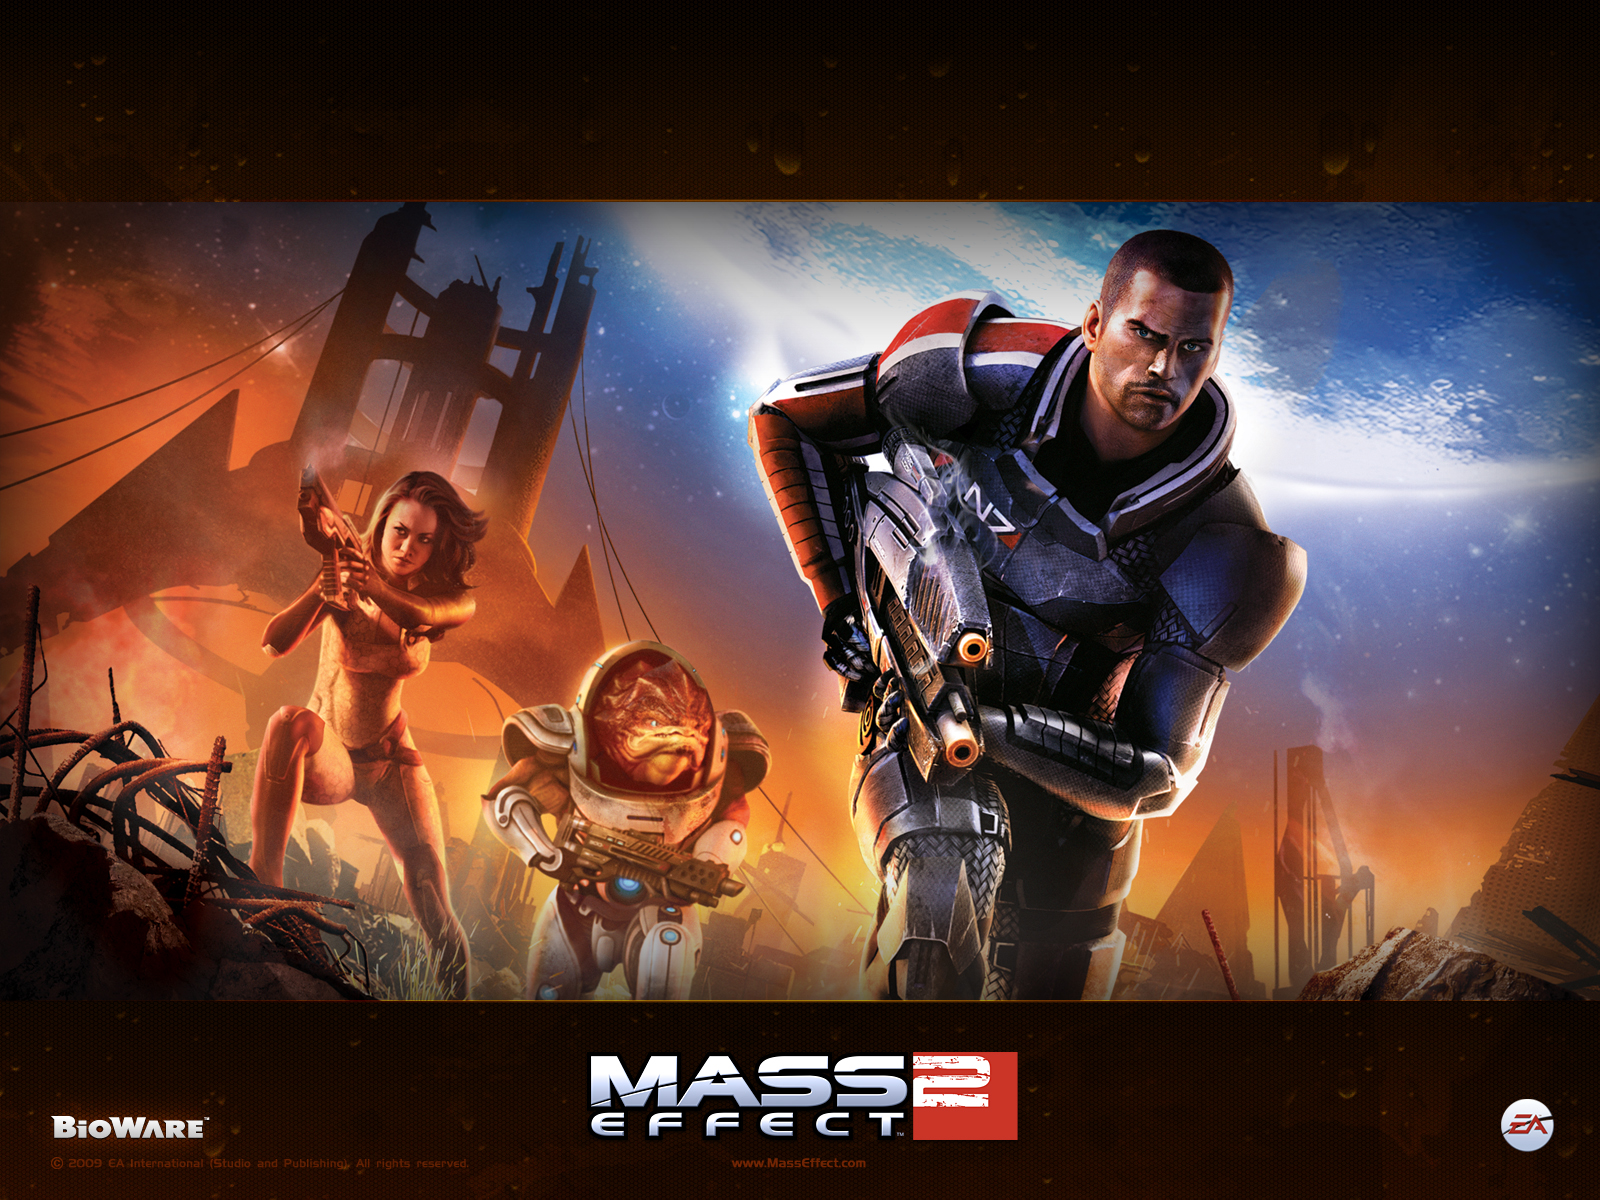 masseffect2 1600x1200 2nd best game of all time commencing 424510 1600x1200